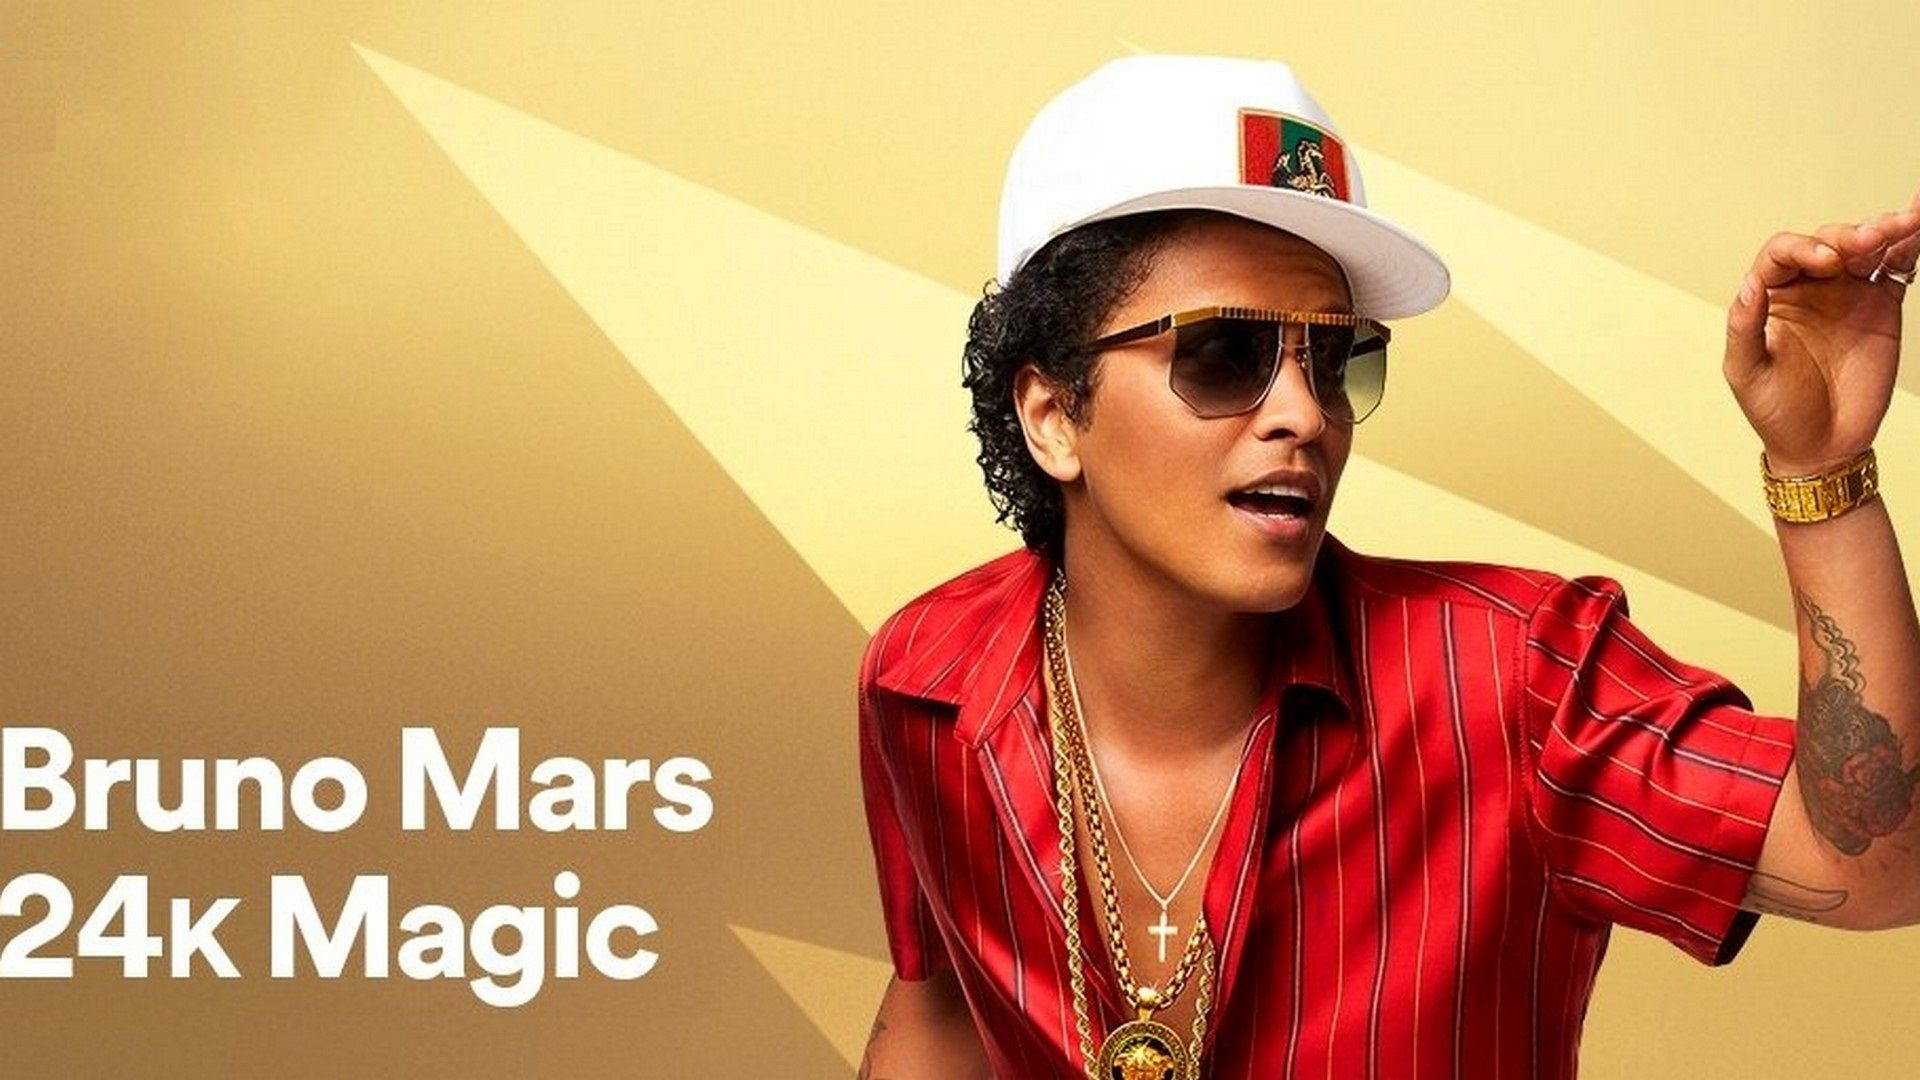 Bruno Mars 24k Magic Wallpaper HD